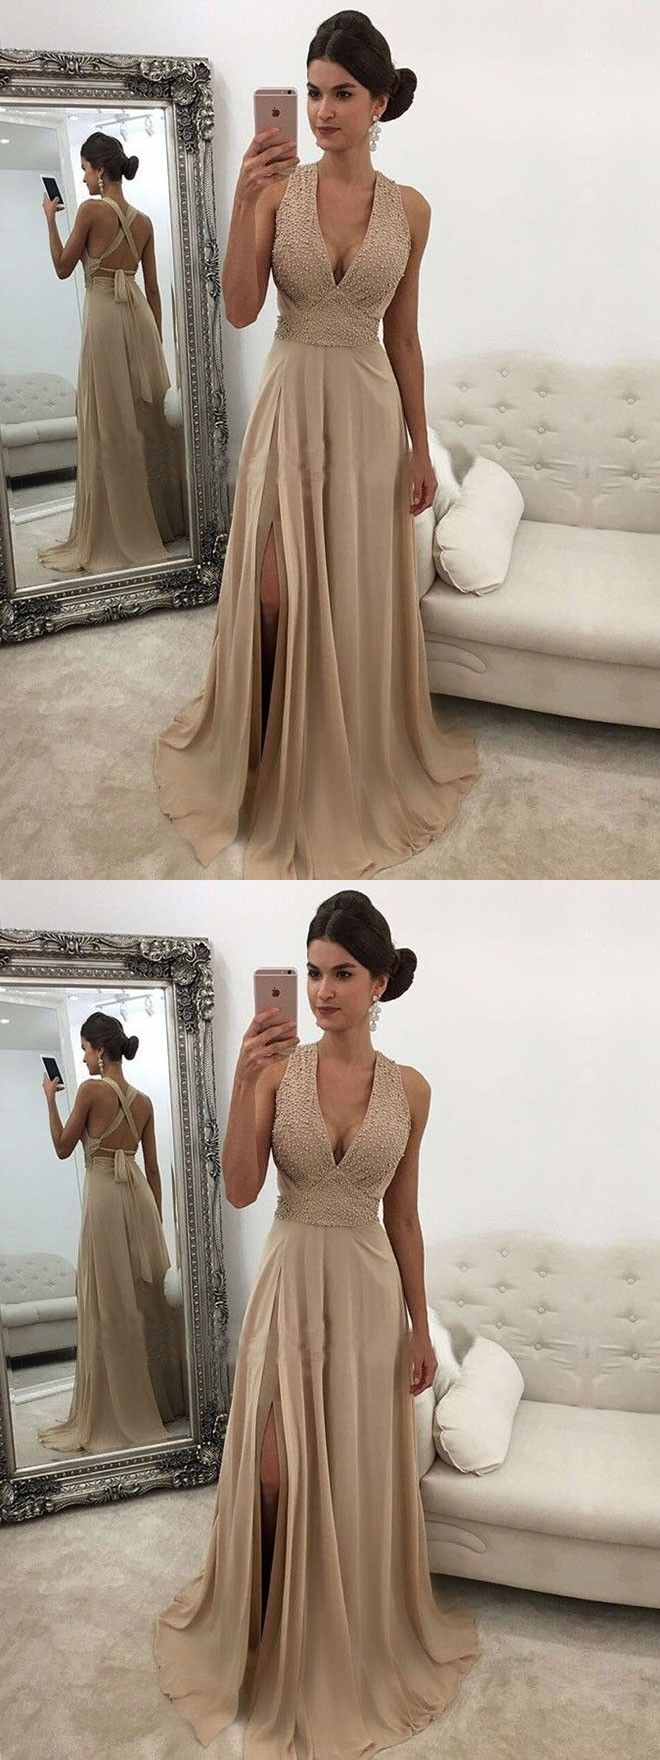 v neck prom dress modest simple cheap long prom dress vb